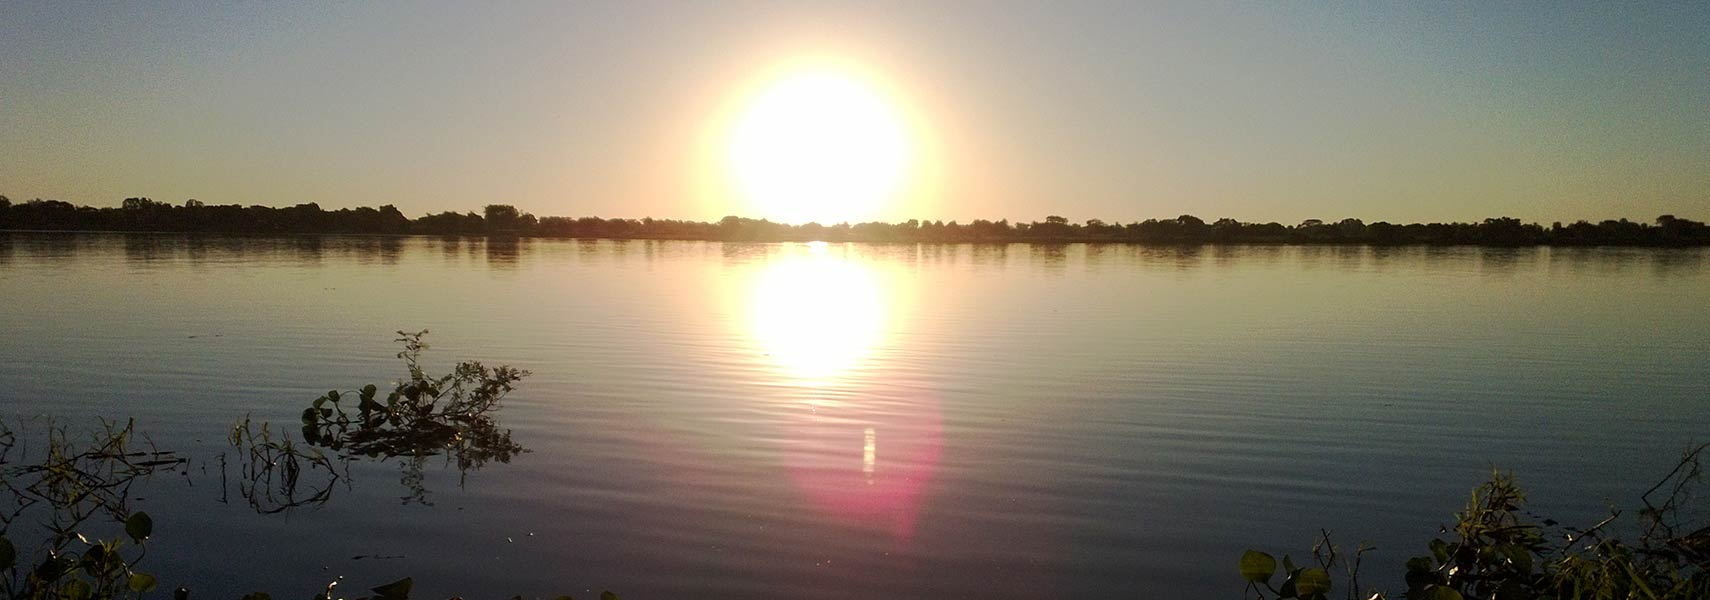 Sunset at Paraguay river, Paraguay